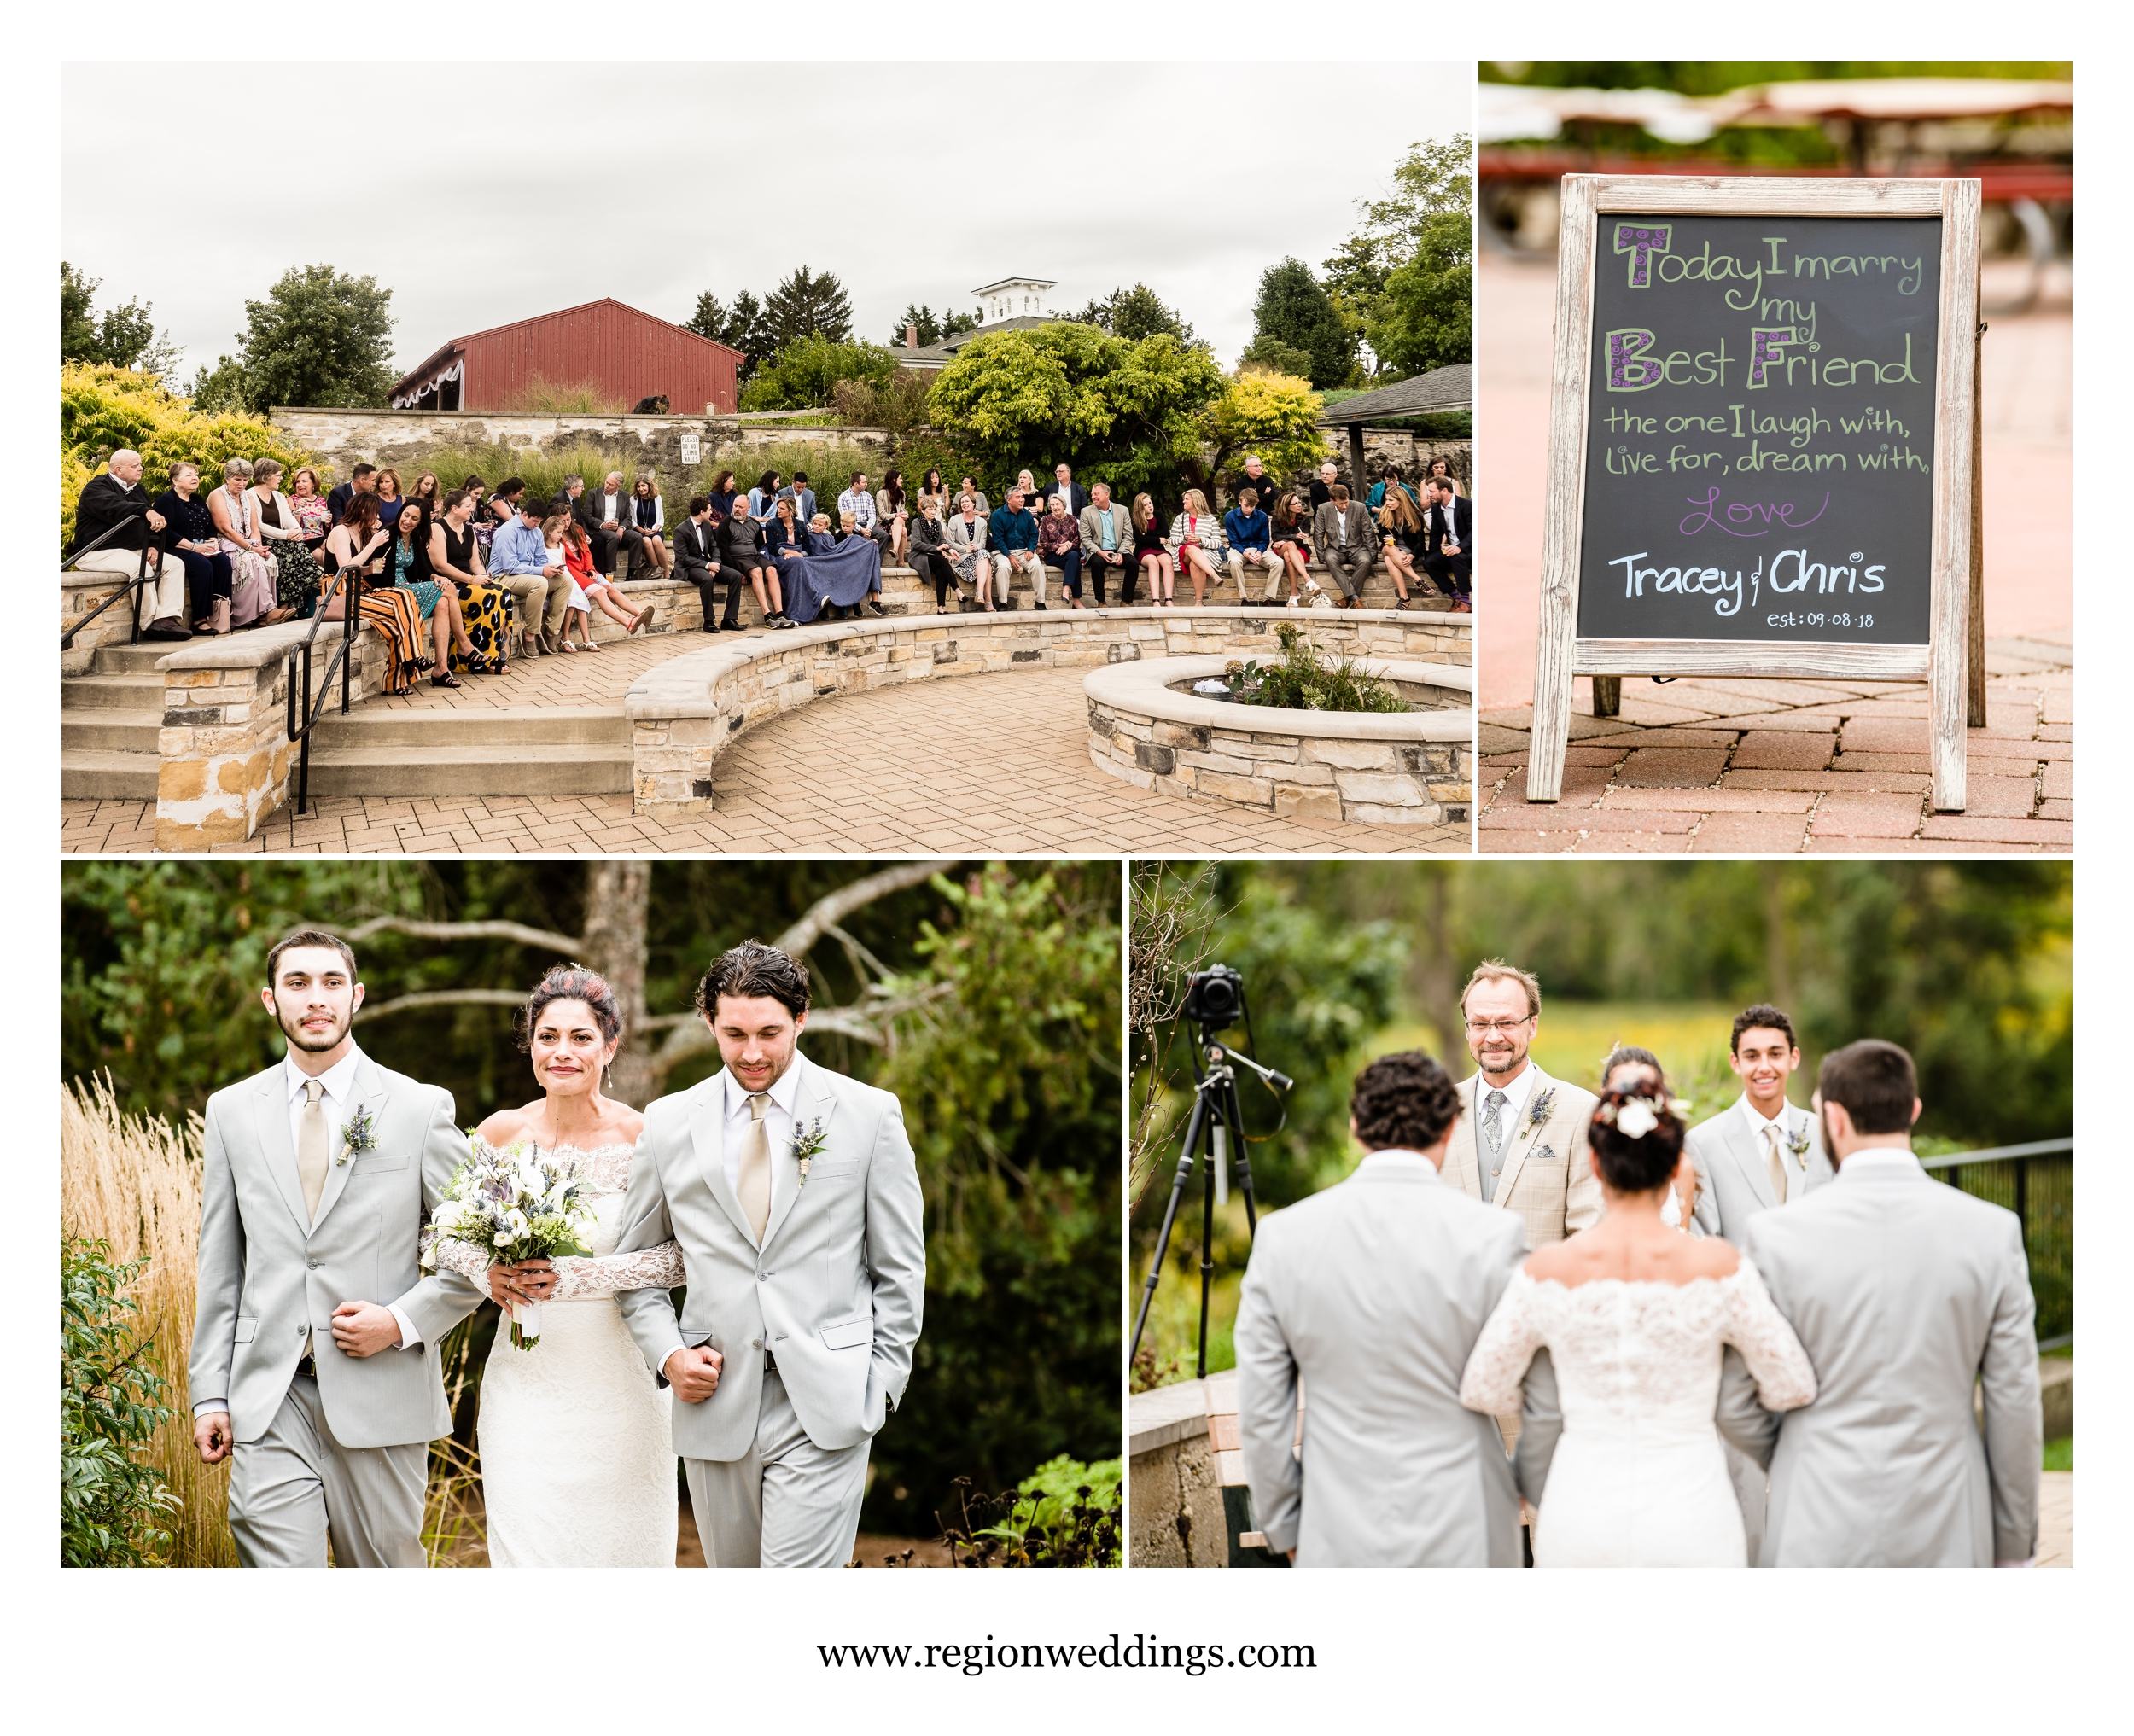 Outdoor wedding ceremony at Peck Farm Park.